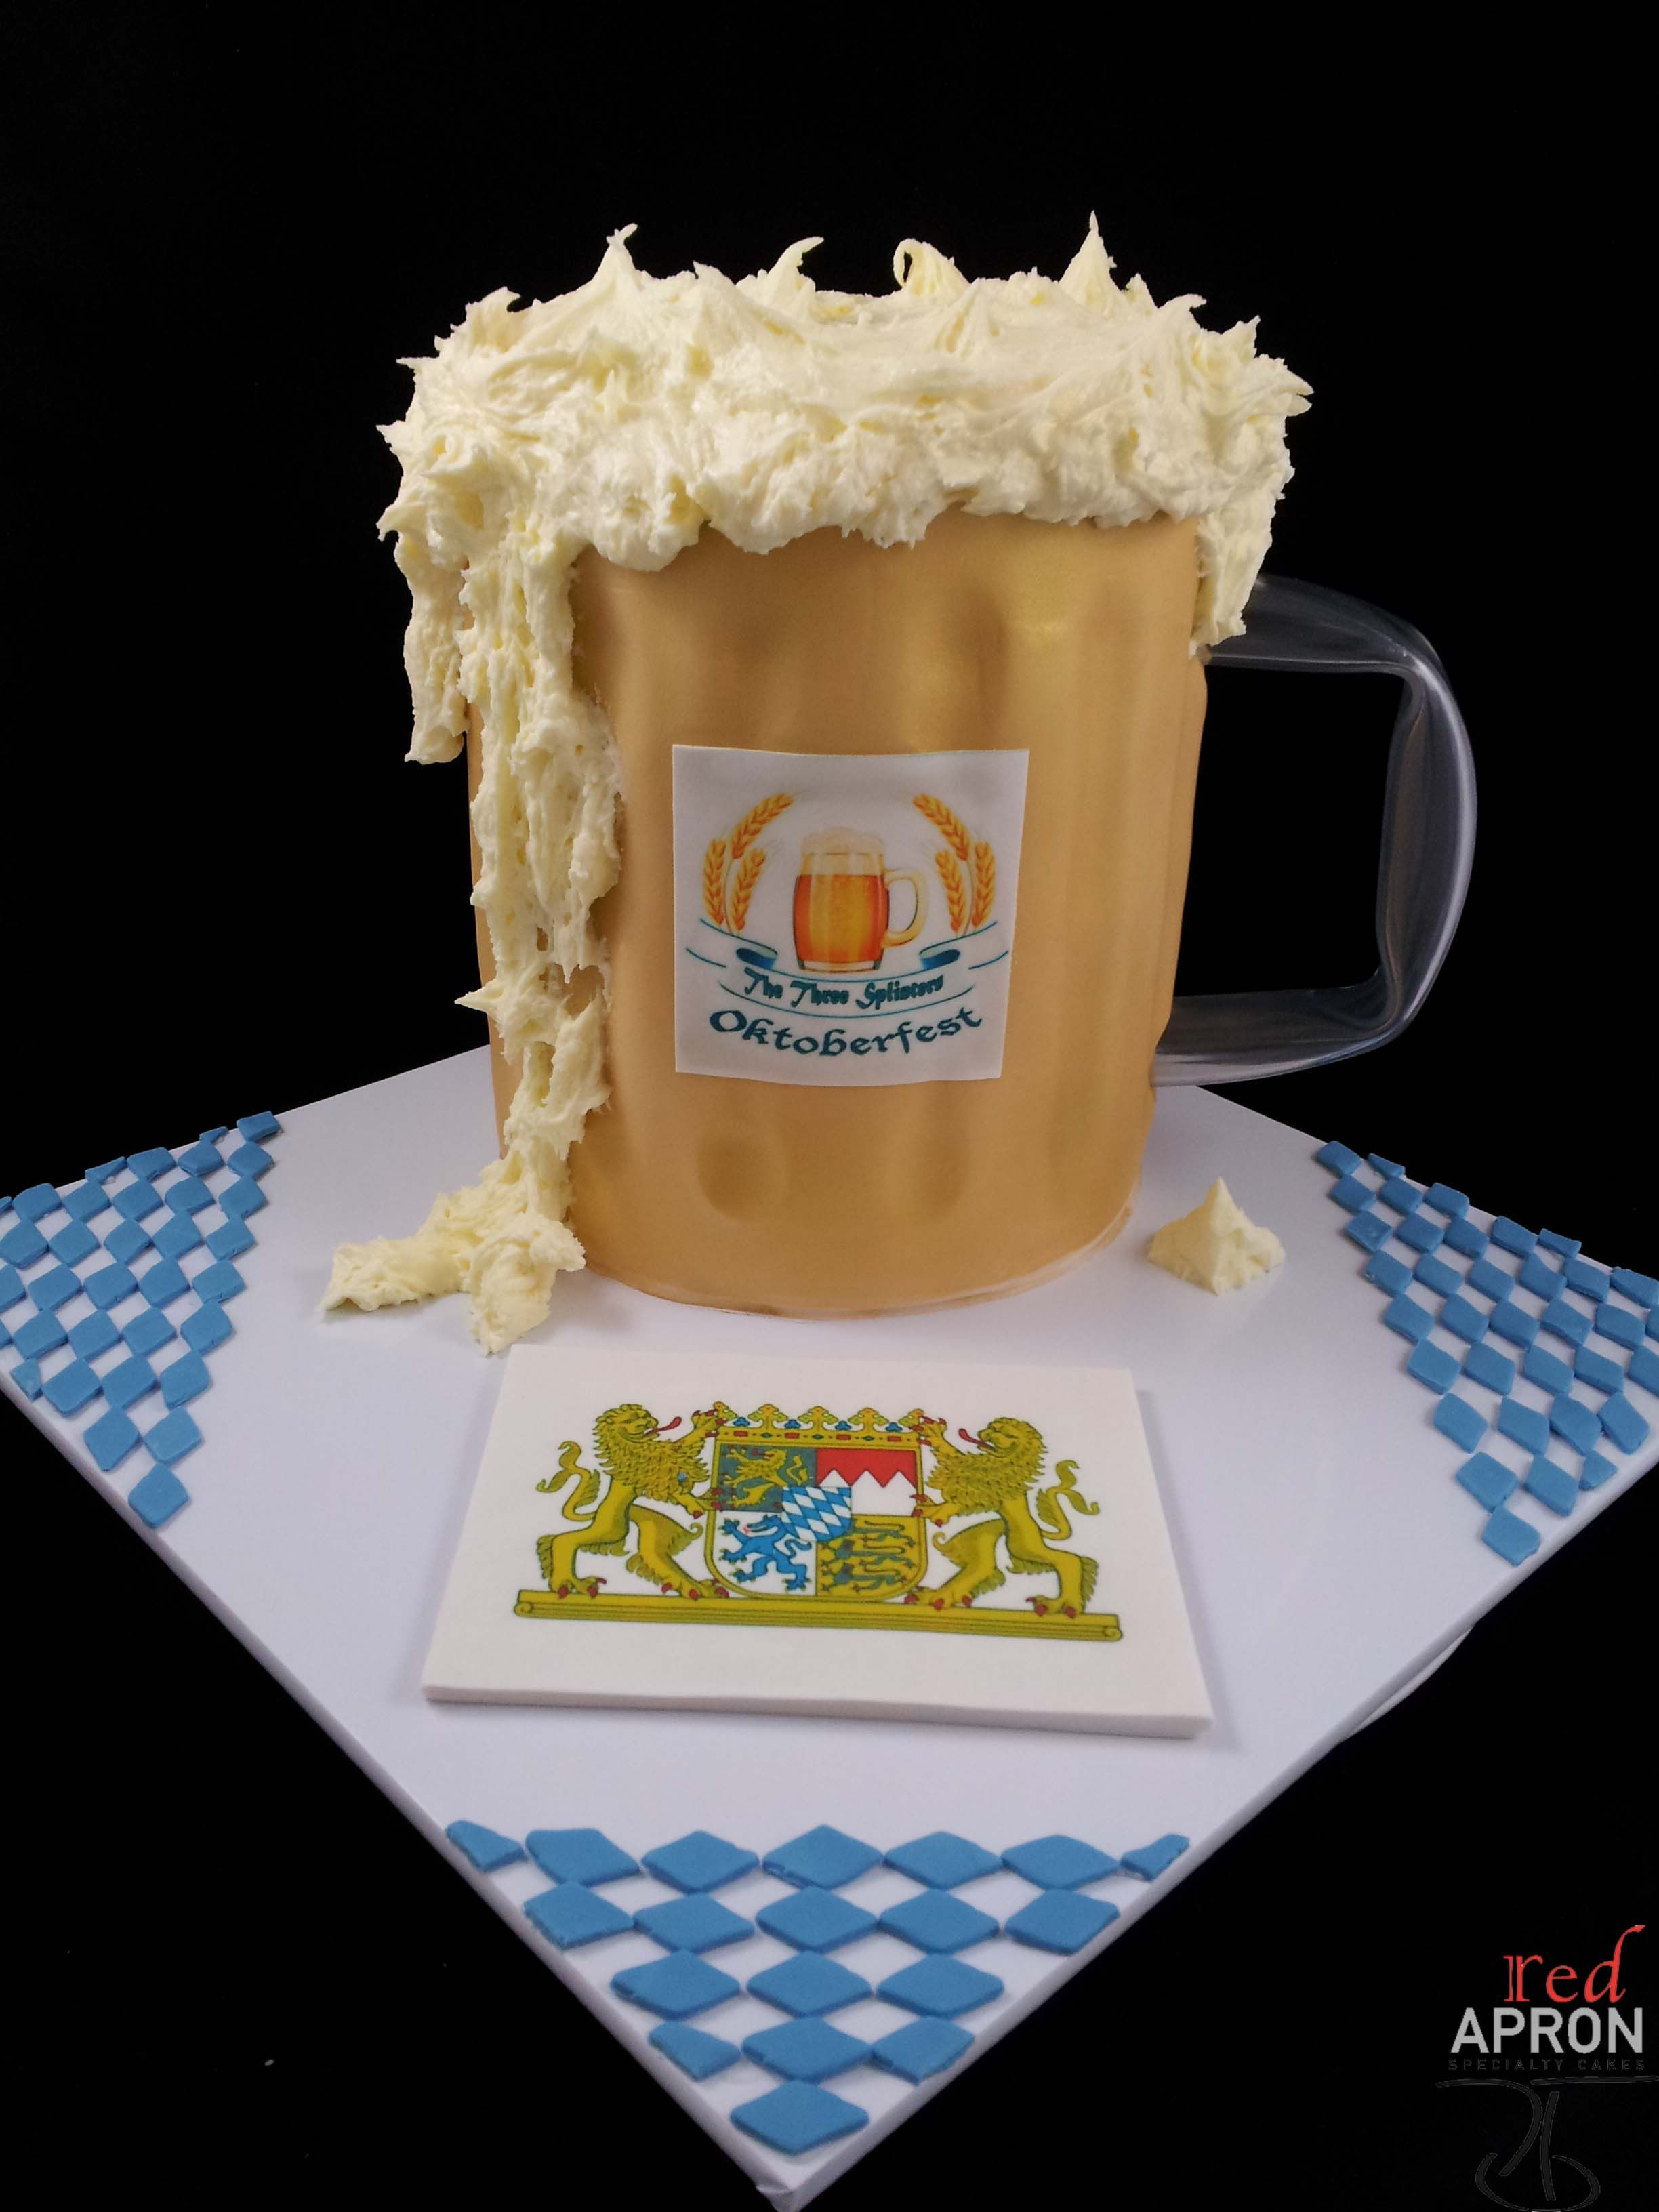 White apron ale - An Oktoberfest Beer Mug From Red Apron Specialty Cakes